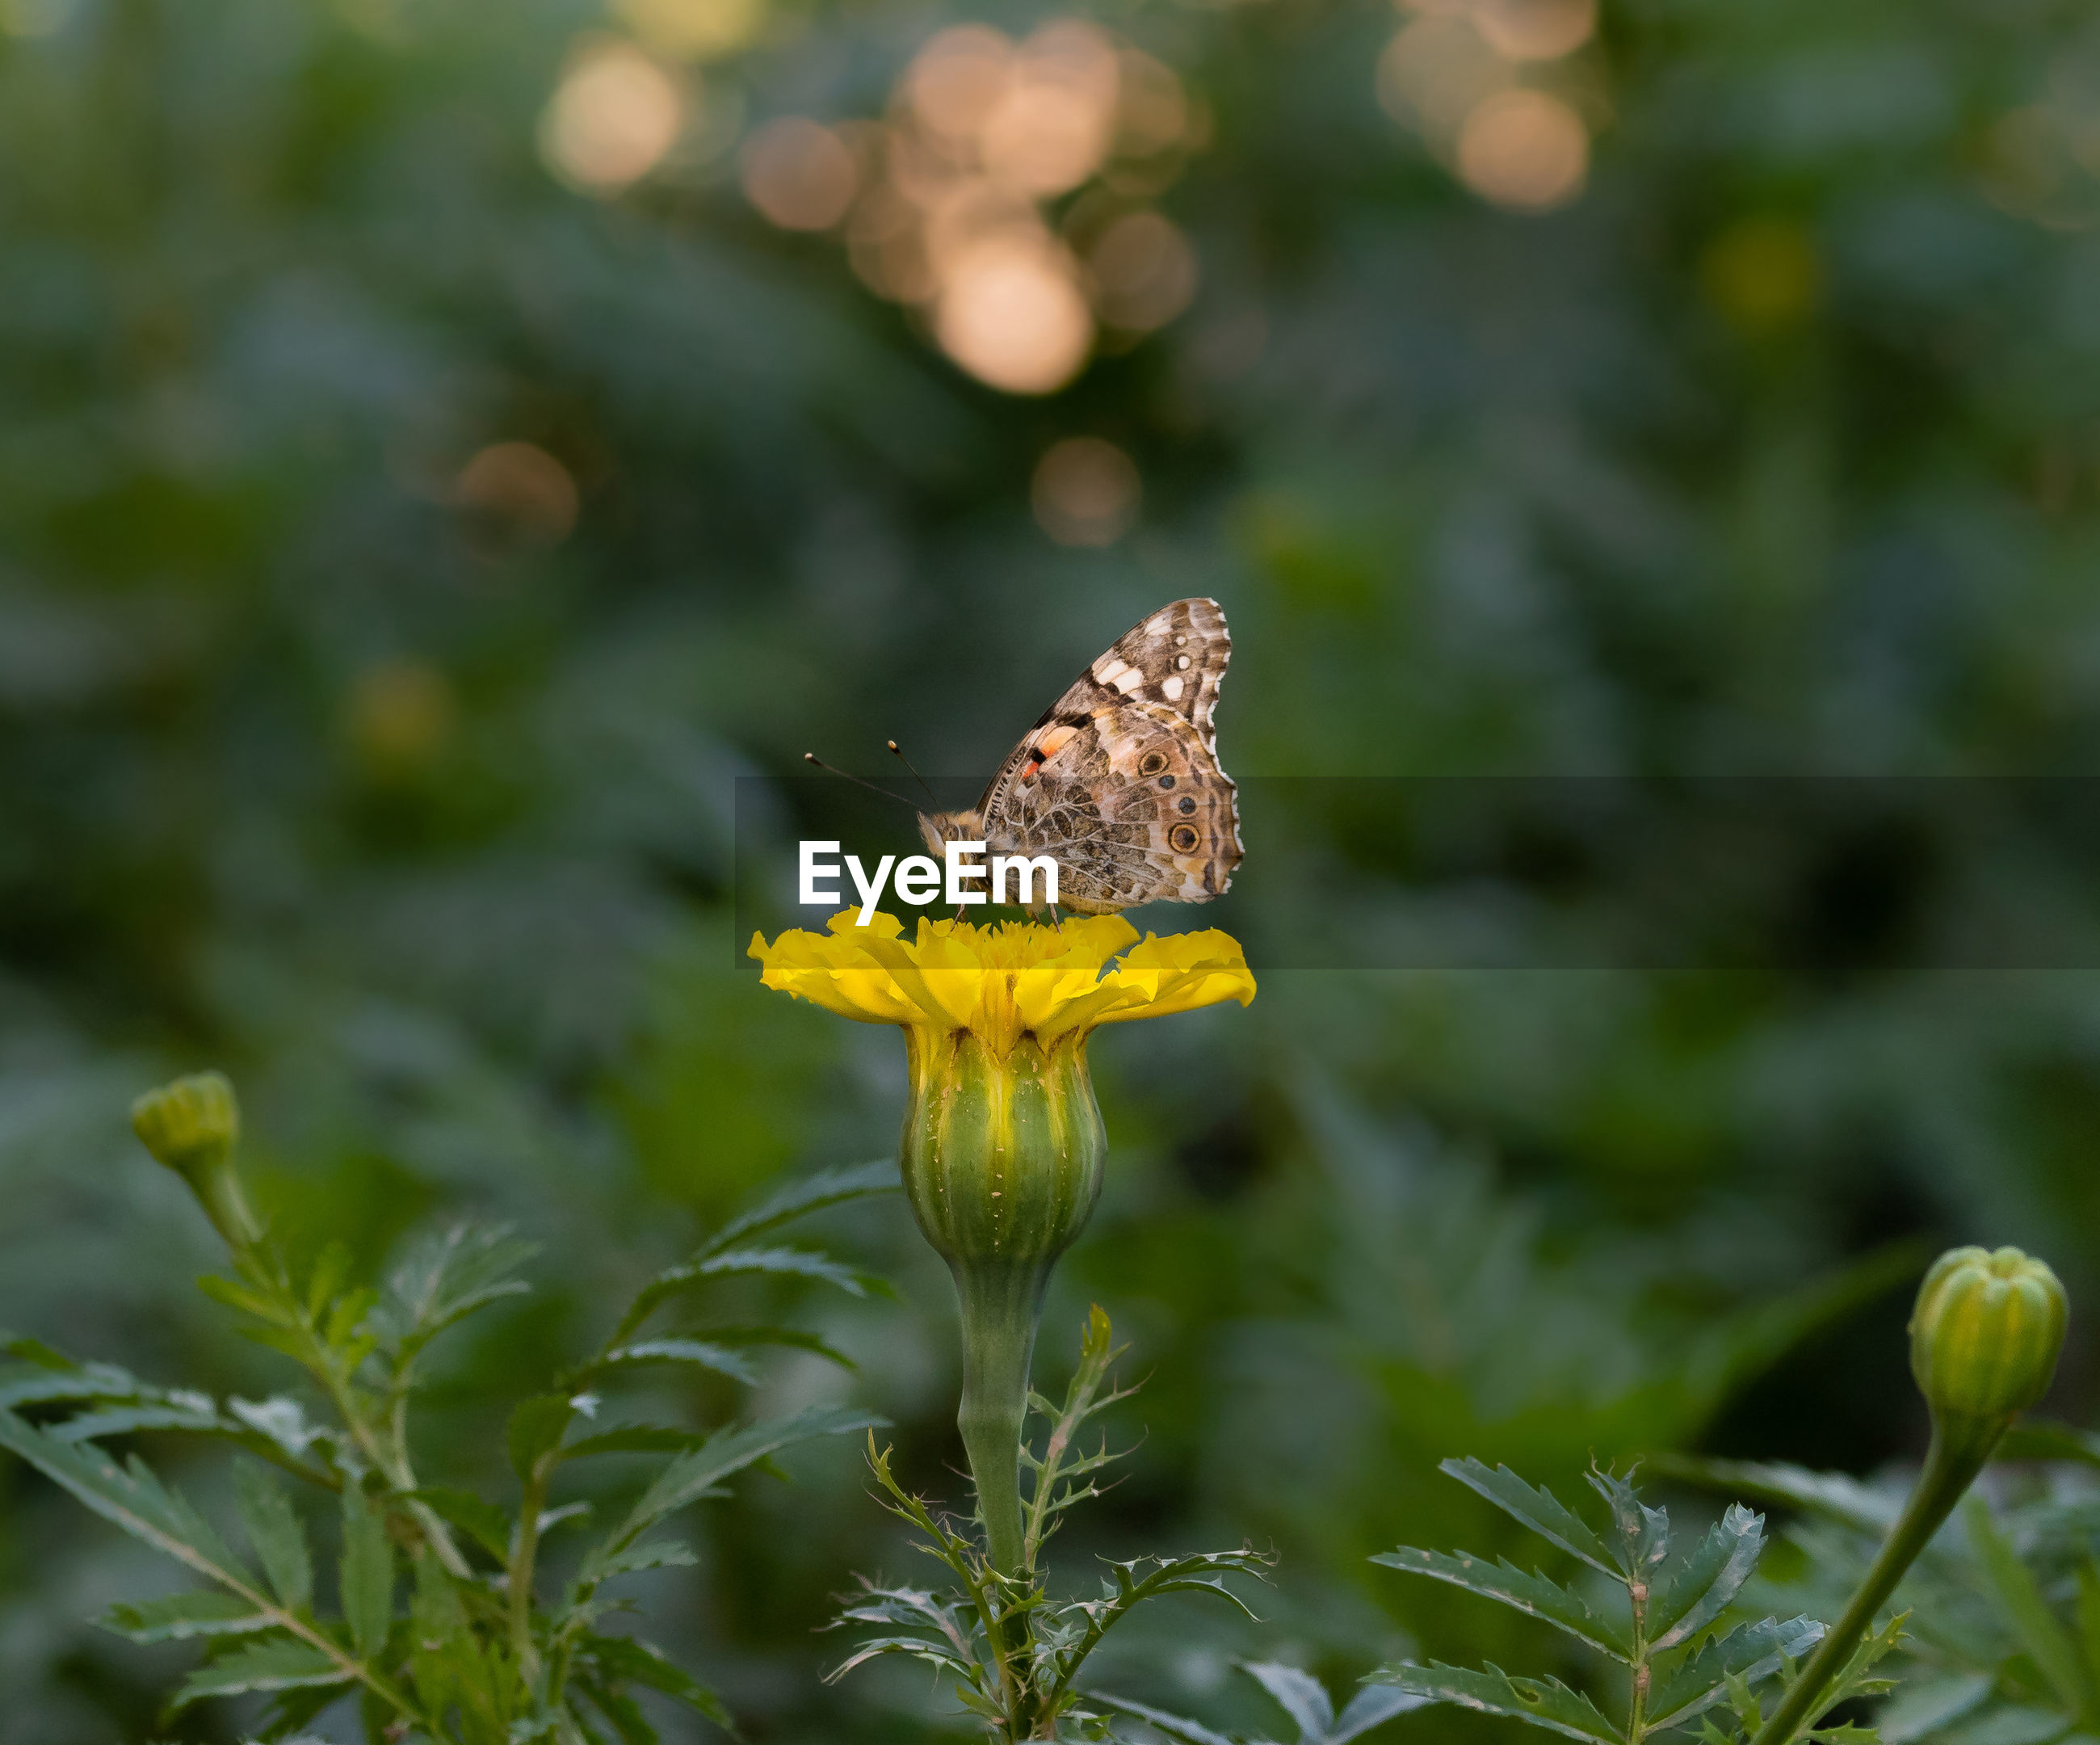 CLOSE-UP OF YELLOW BUTTERFLY ON FLOWER